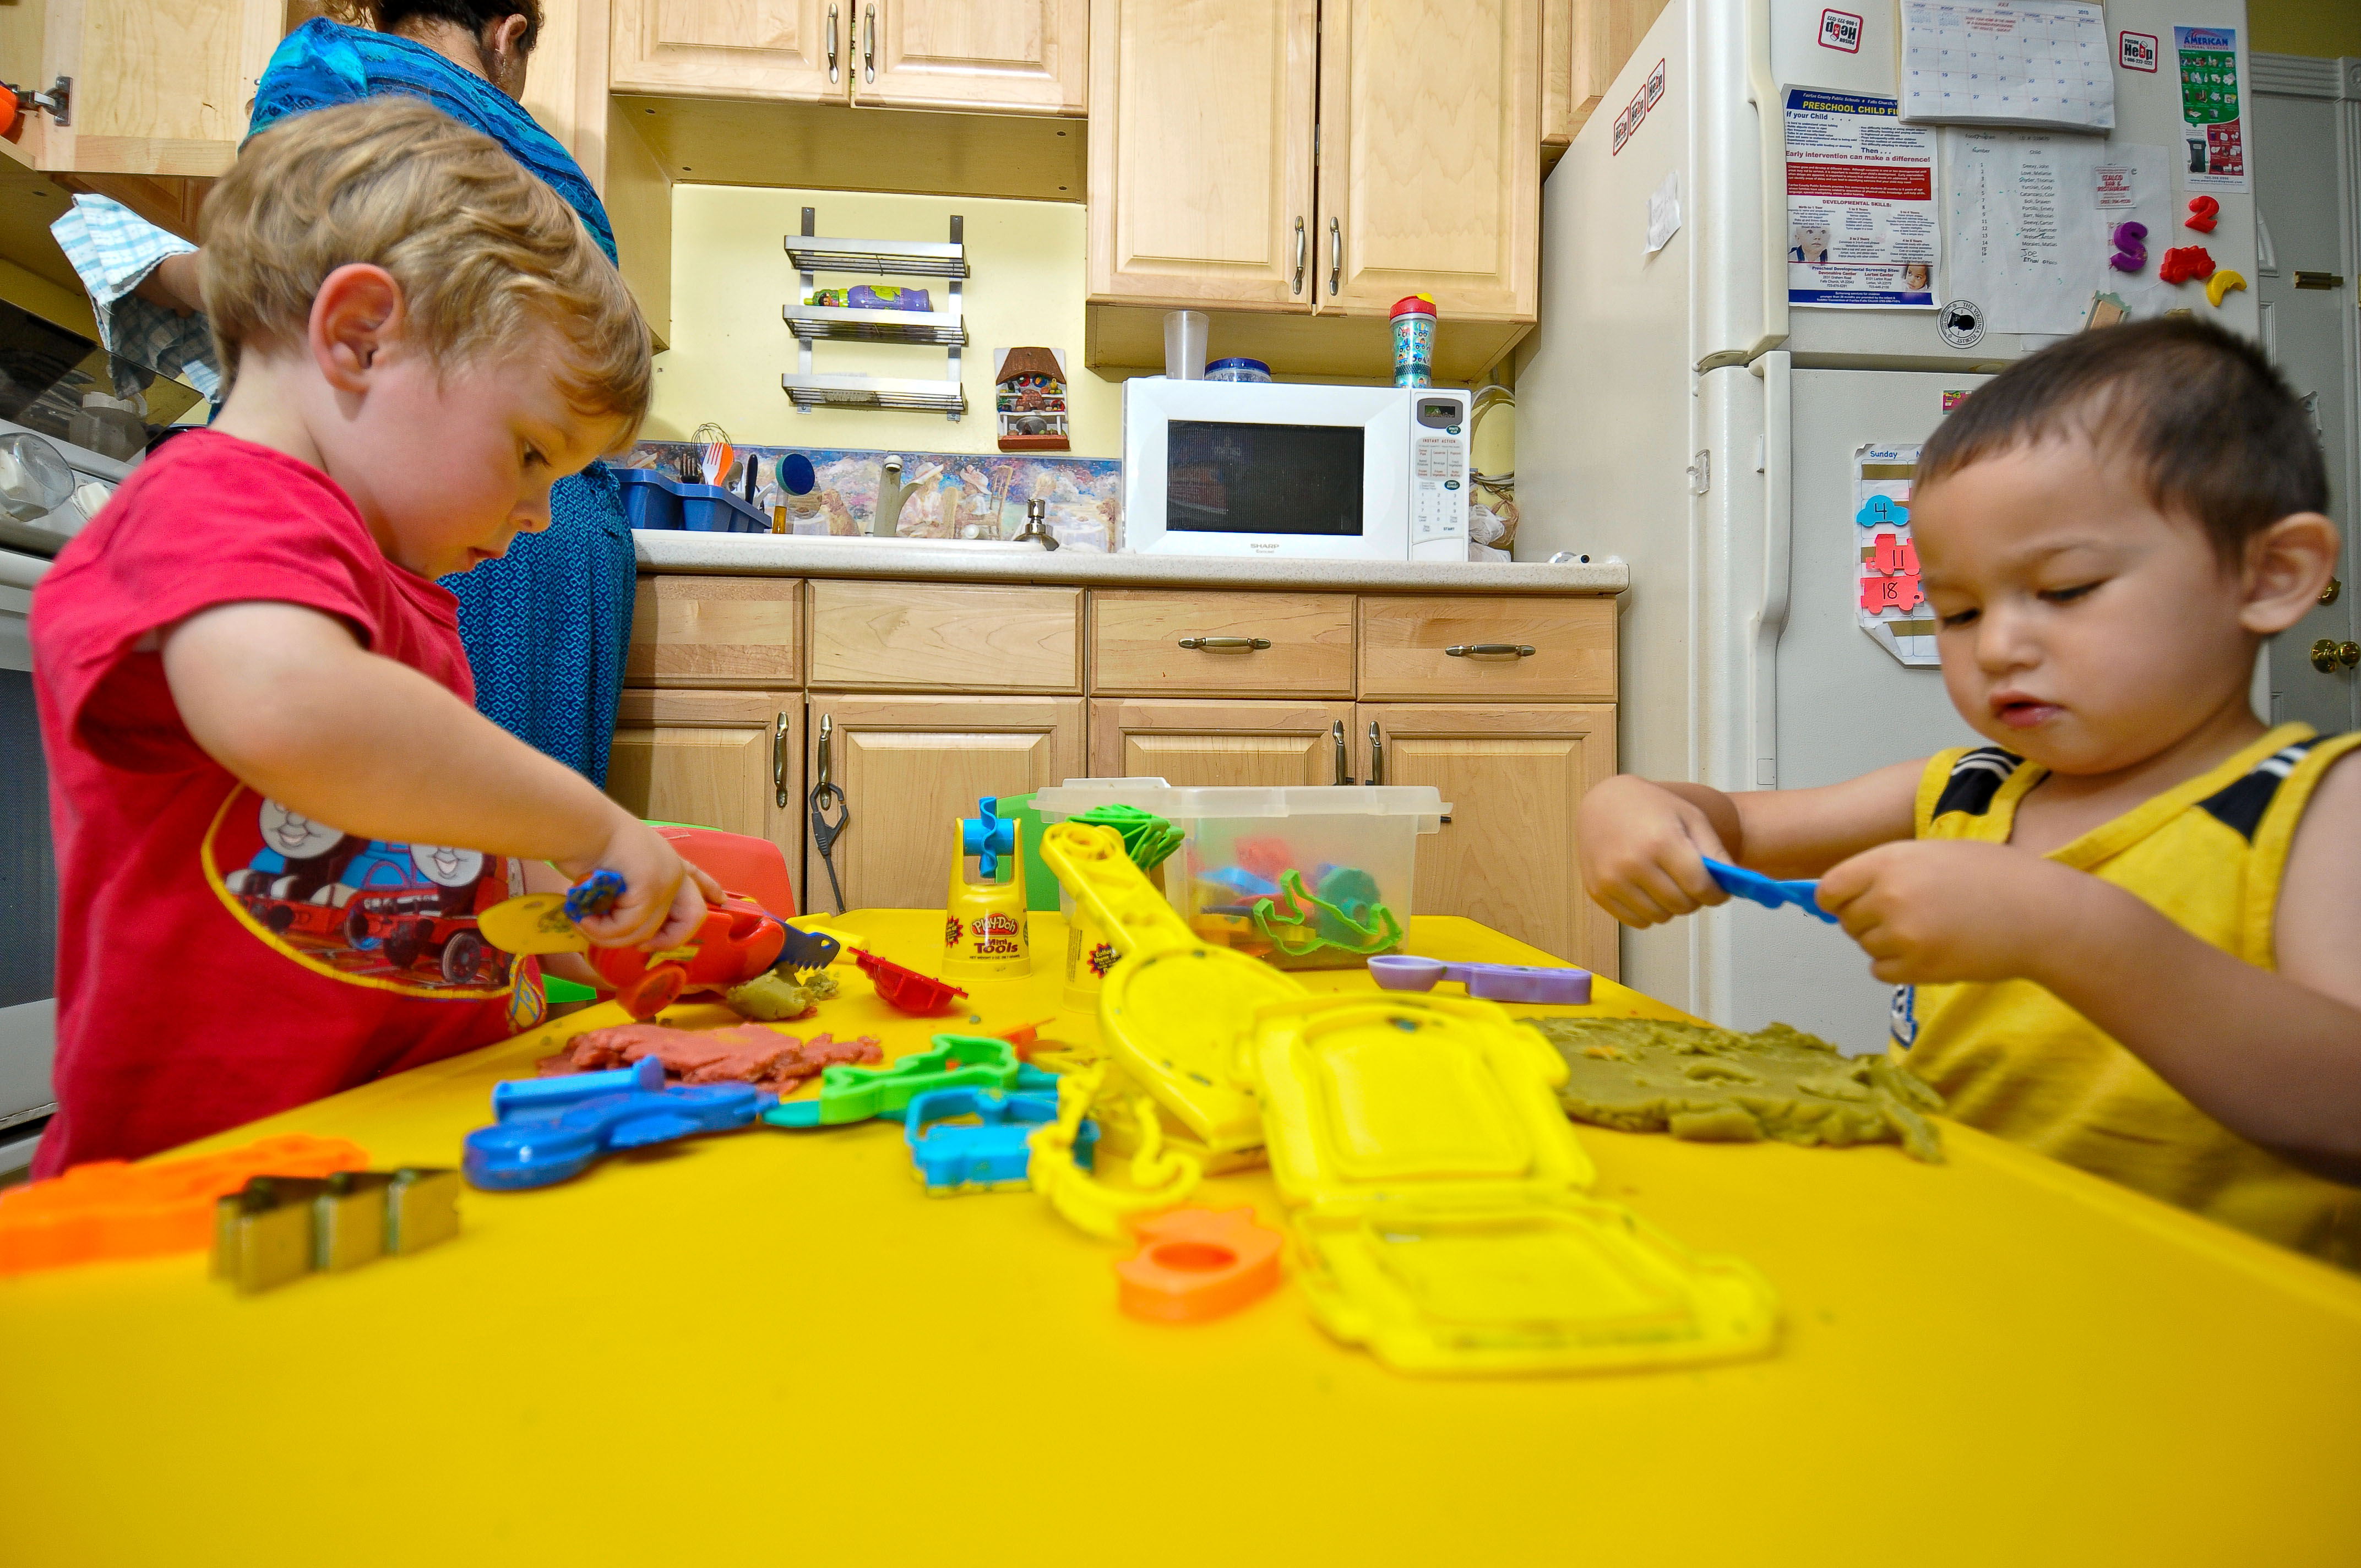 Location, Location, Location! The Safe Siting of Child Care Facilities